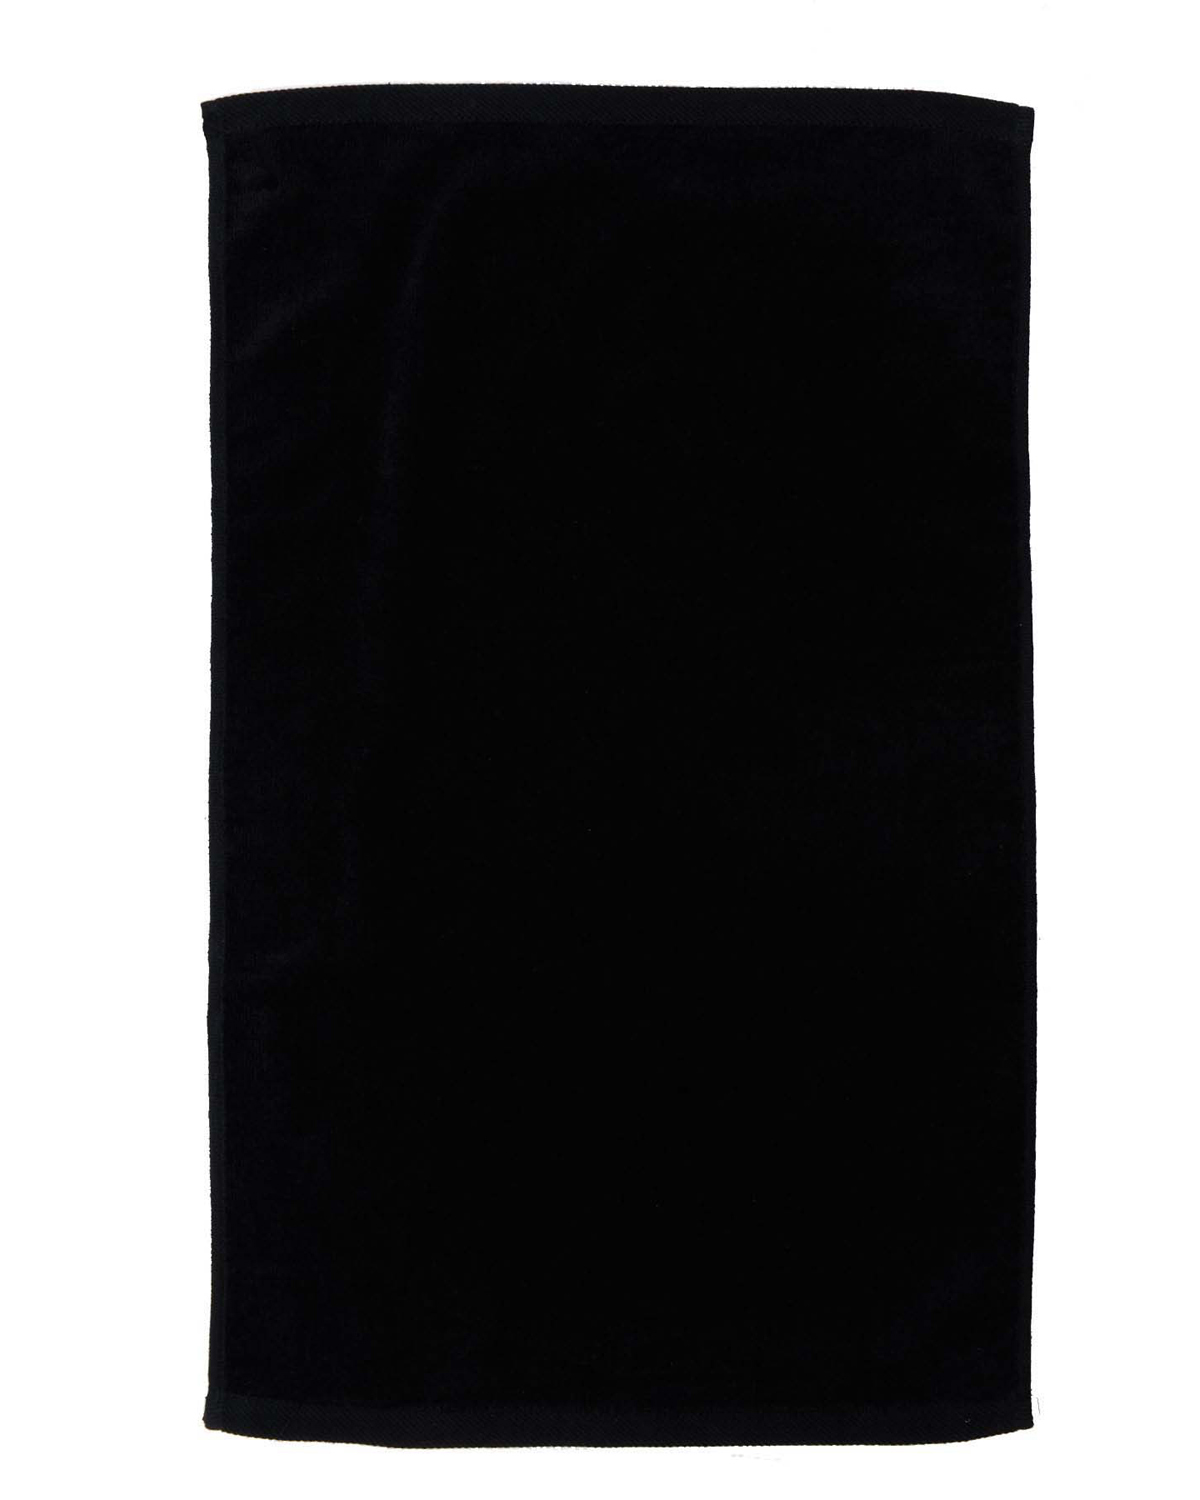 Pro Towels TRU35 - Platinum Collection Sport Towel